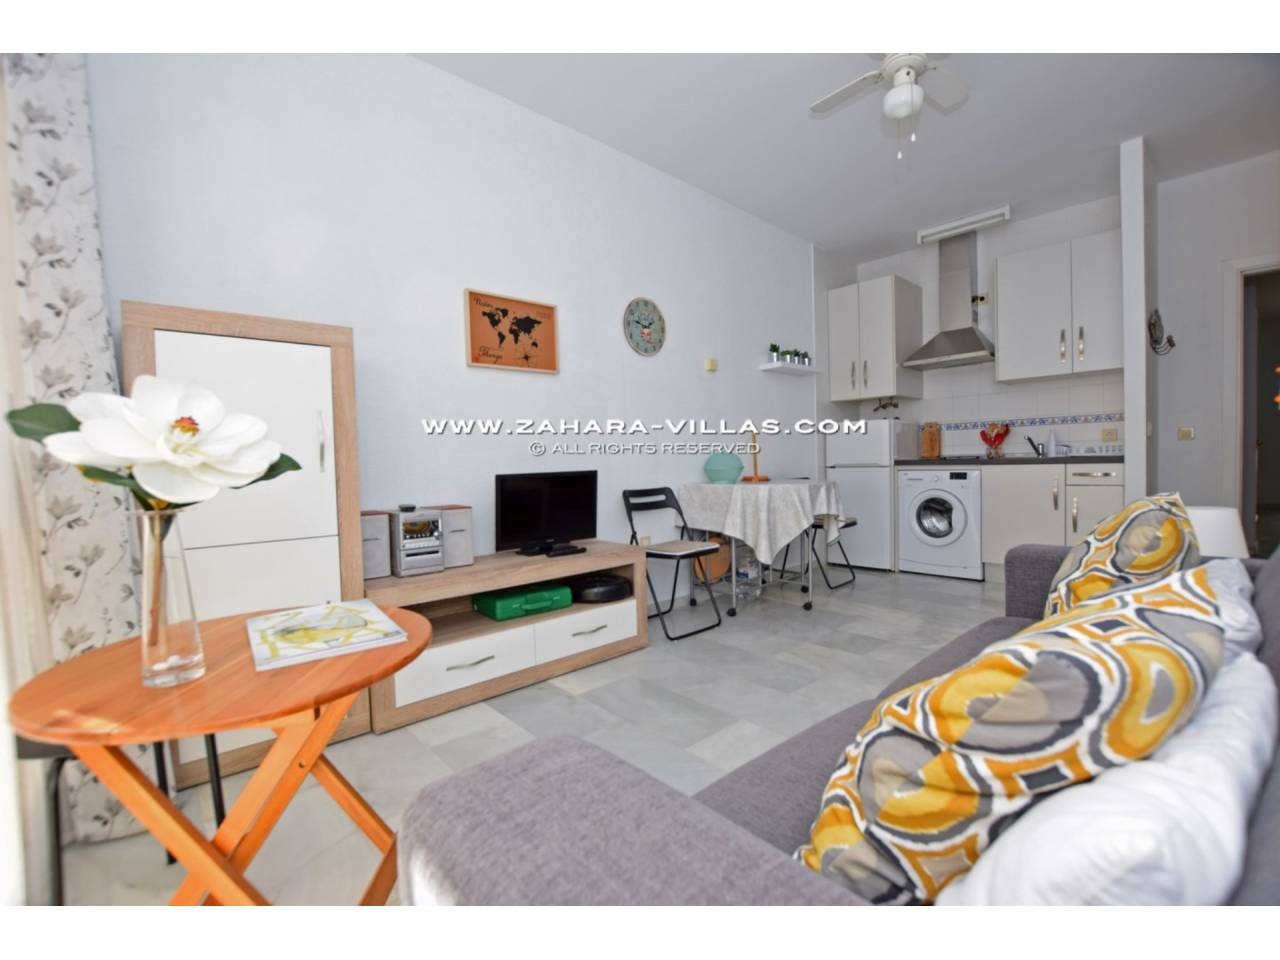 Imagen 11 de Apartment for sale in Zahara de los Atunes